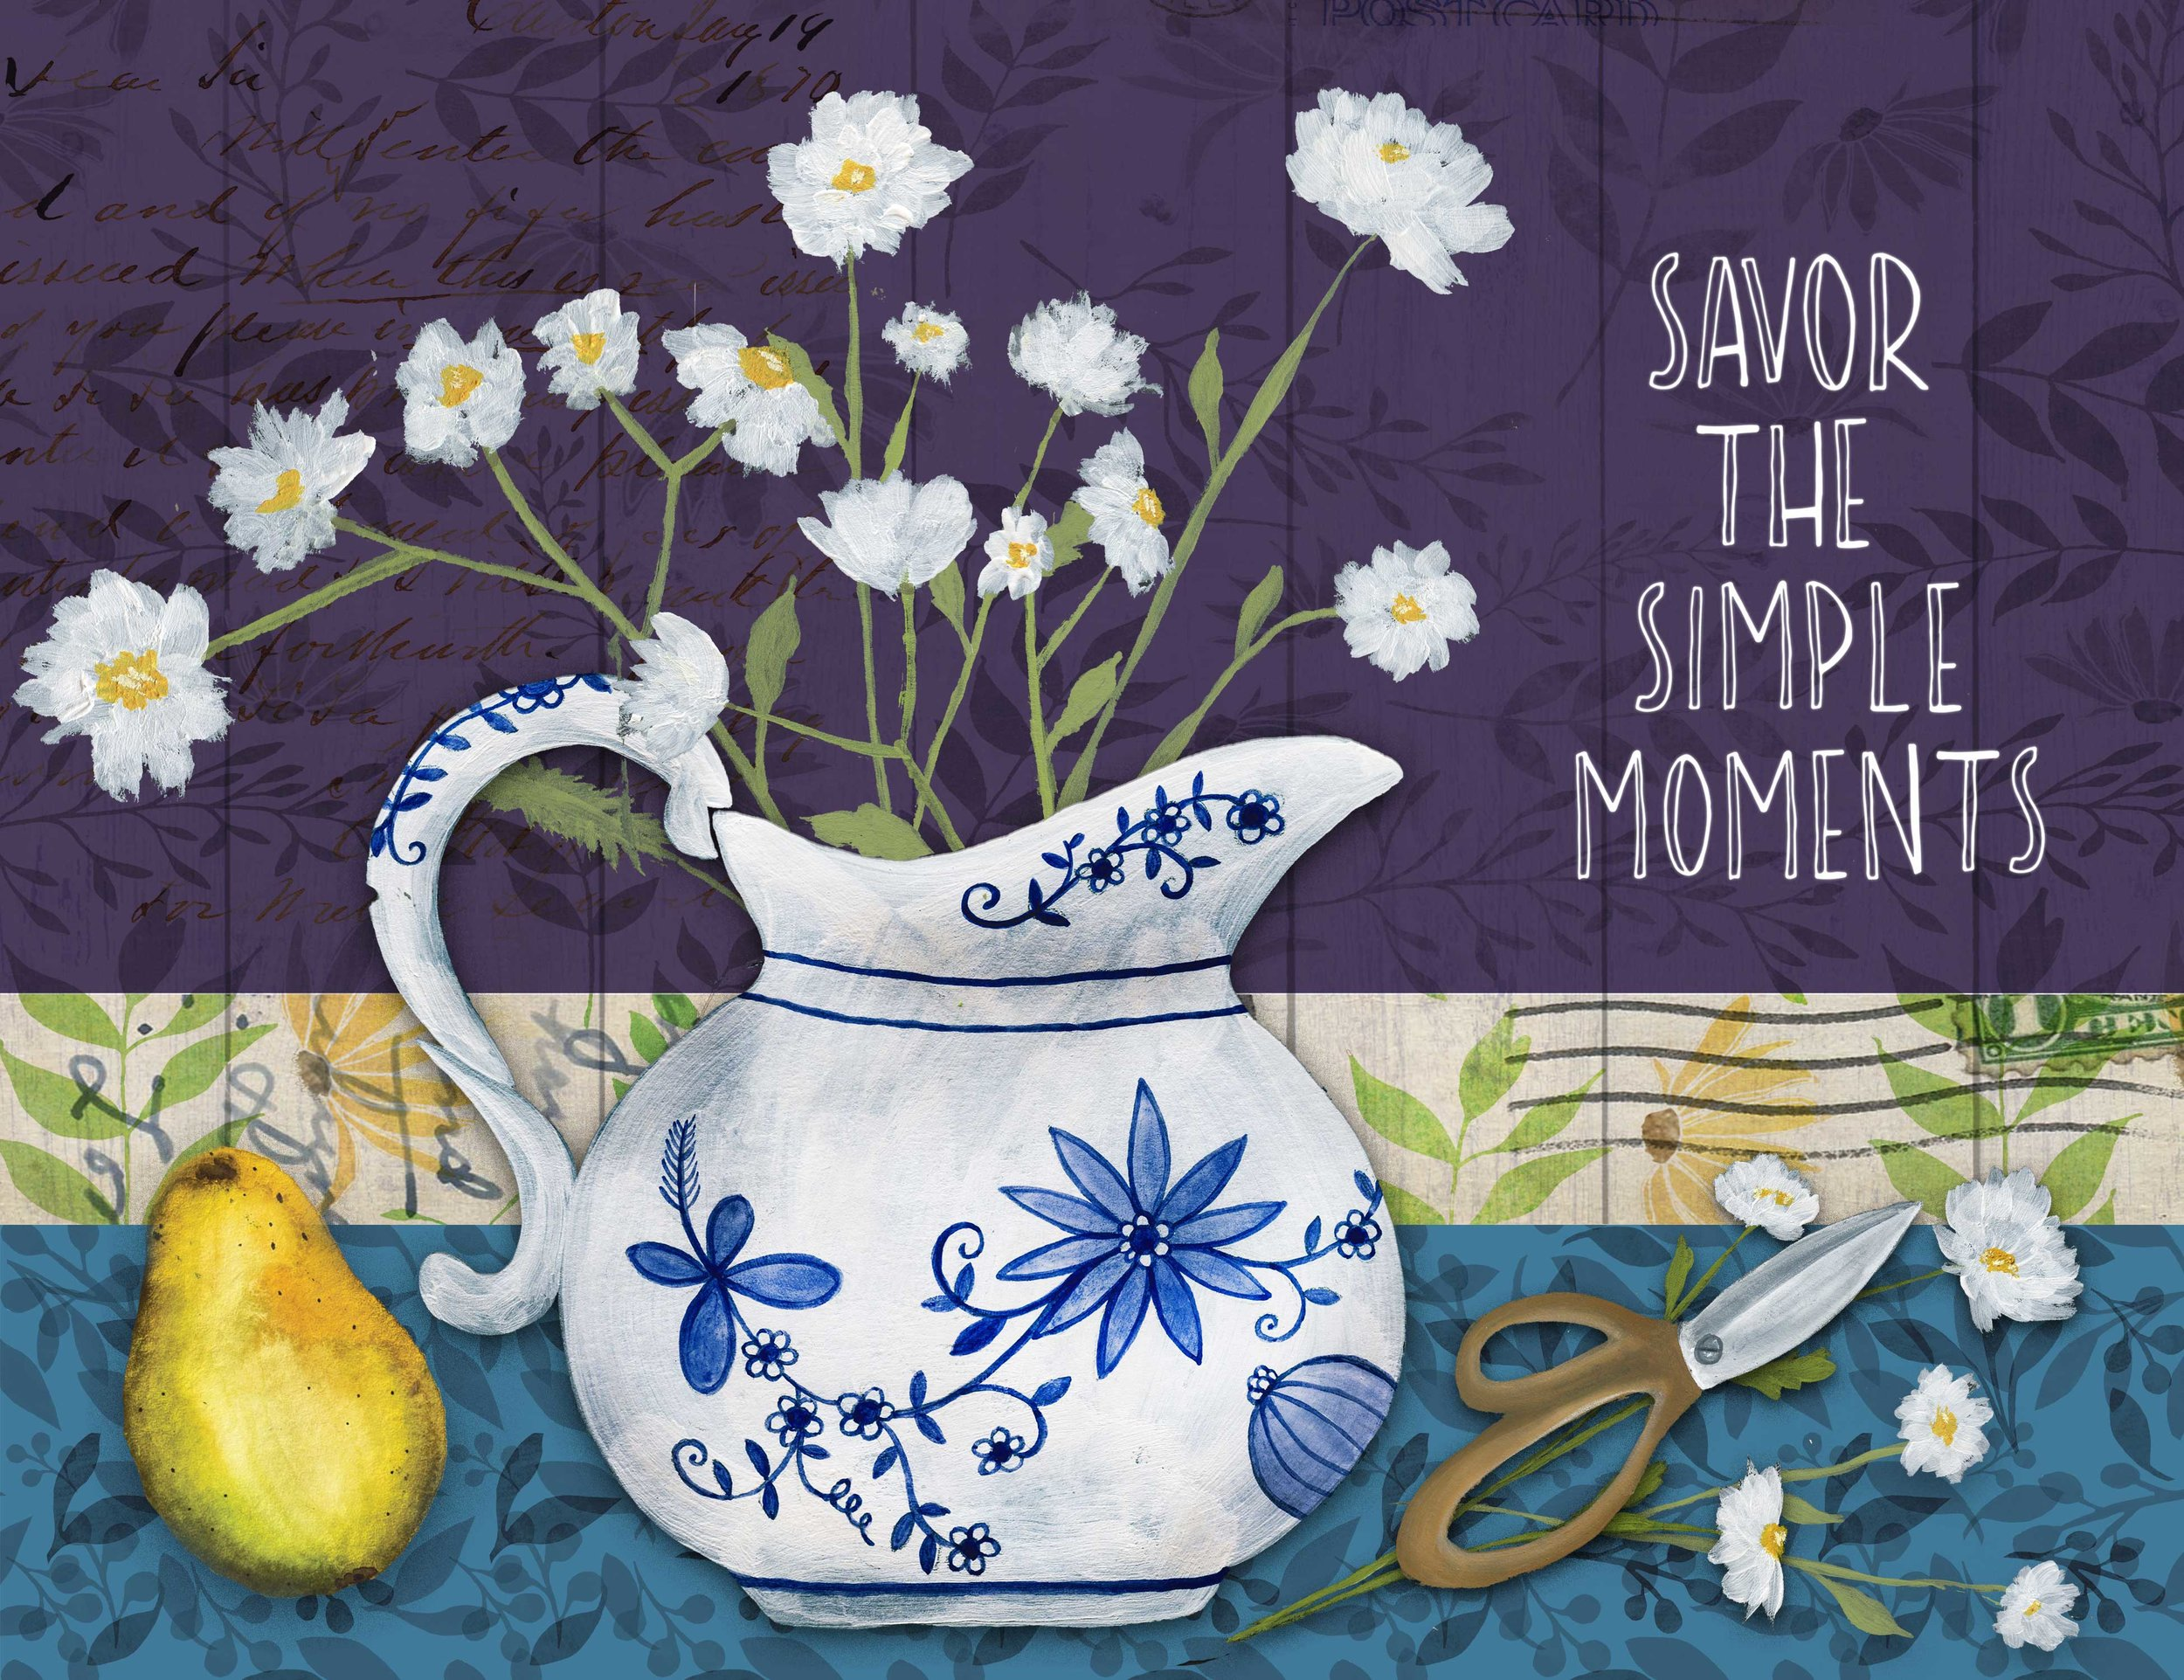 savor-the-simple-moments-lang-final-2.jpg